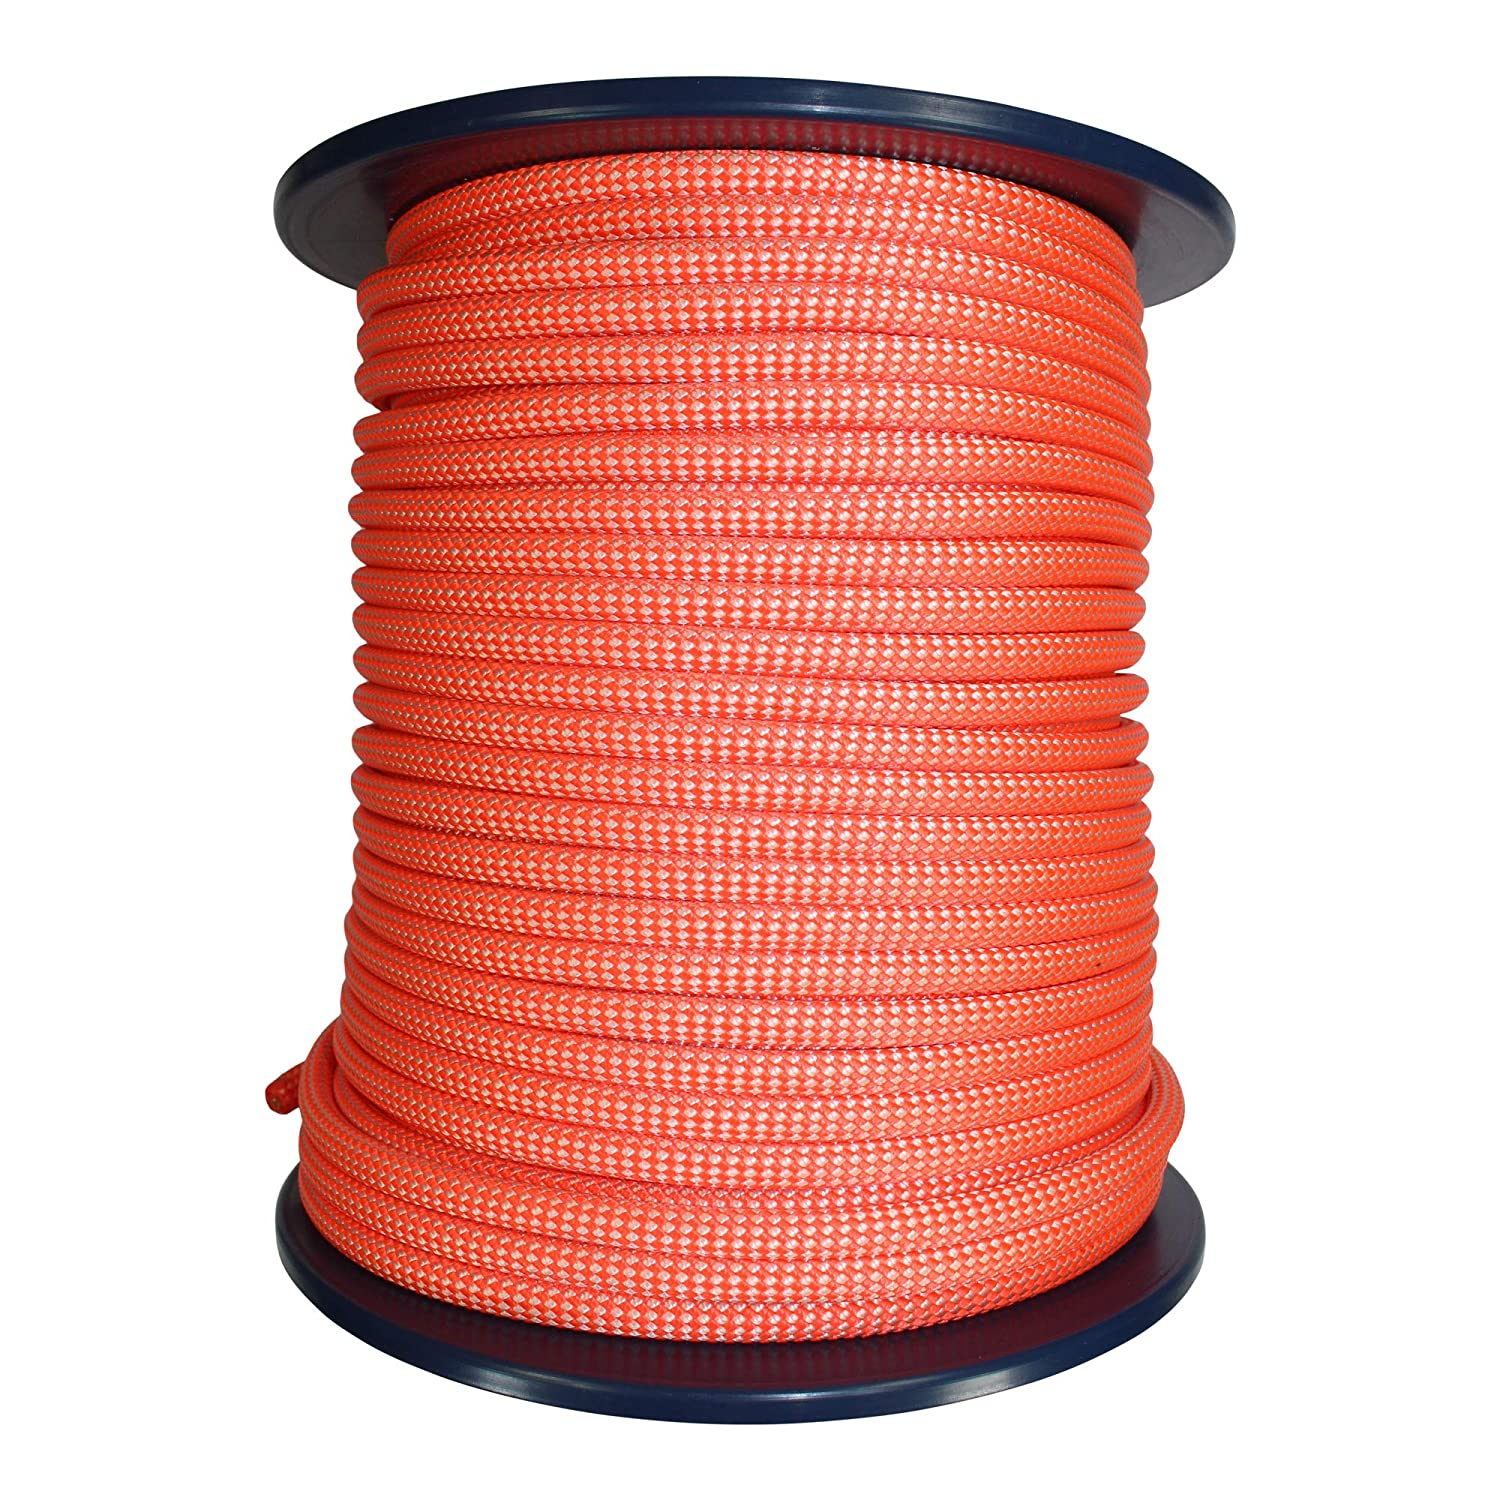 High Visibility Caving Rope Cord for Speleo Canyoning 9mm Canyoneering Rope w//Teflon Eco Coating Tendon Canyon Dry Rope 100 Meters, Orange /& White Rappelling UIAA//CE Certified